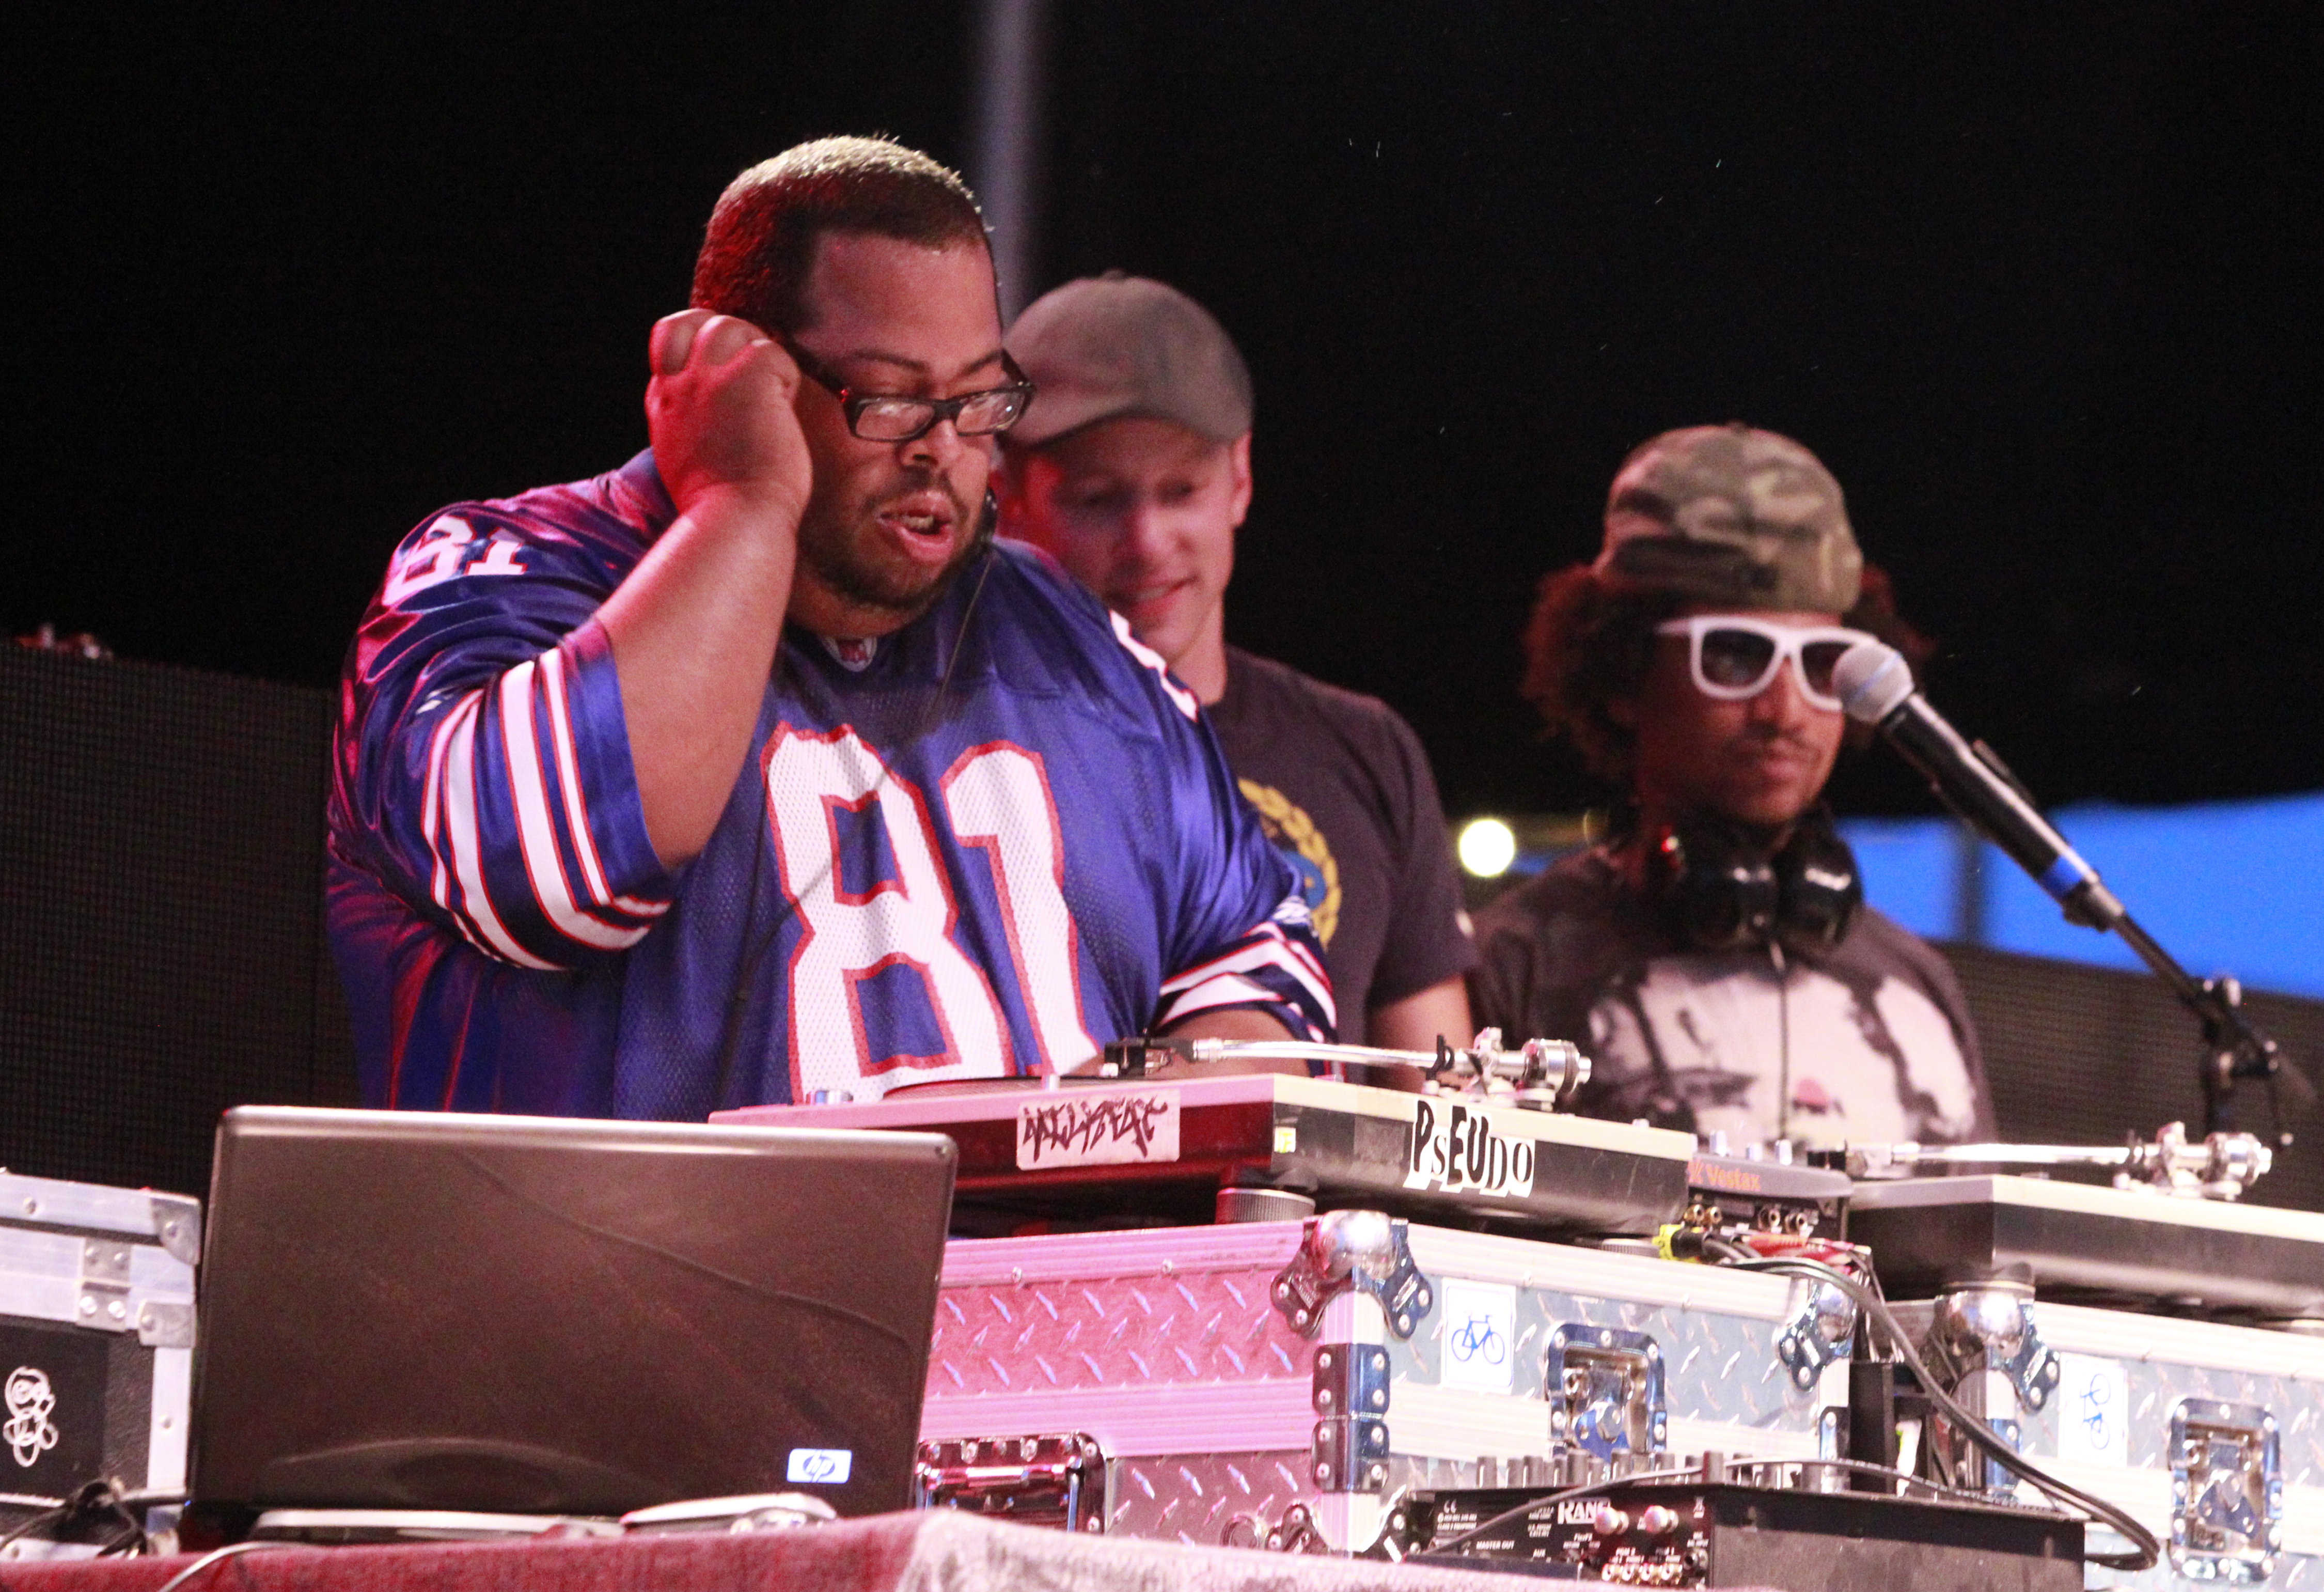 DJ Optimus Prime, left, is one of the performers at Friday's fundraiser. (John Hickey/Buffalo News file photo)